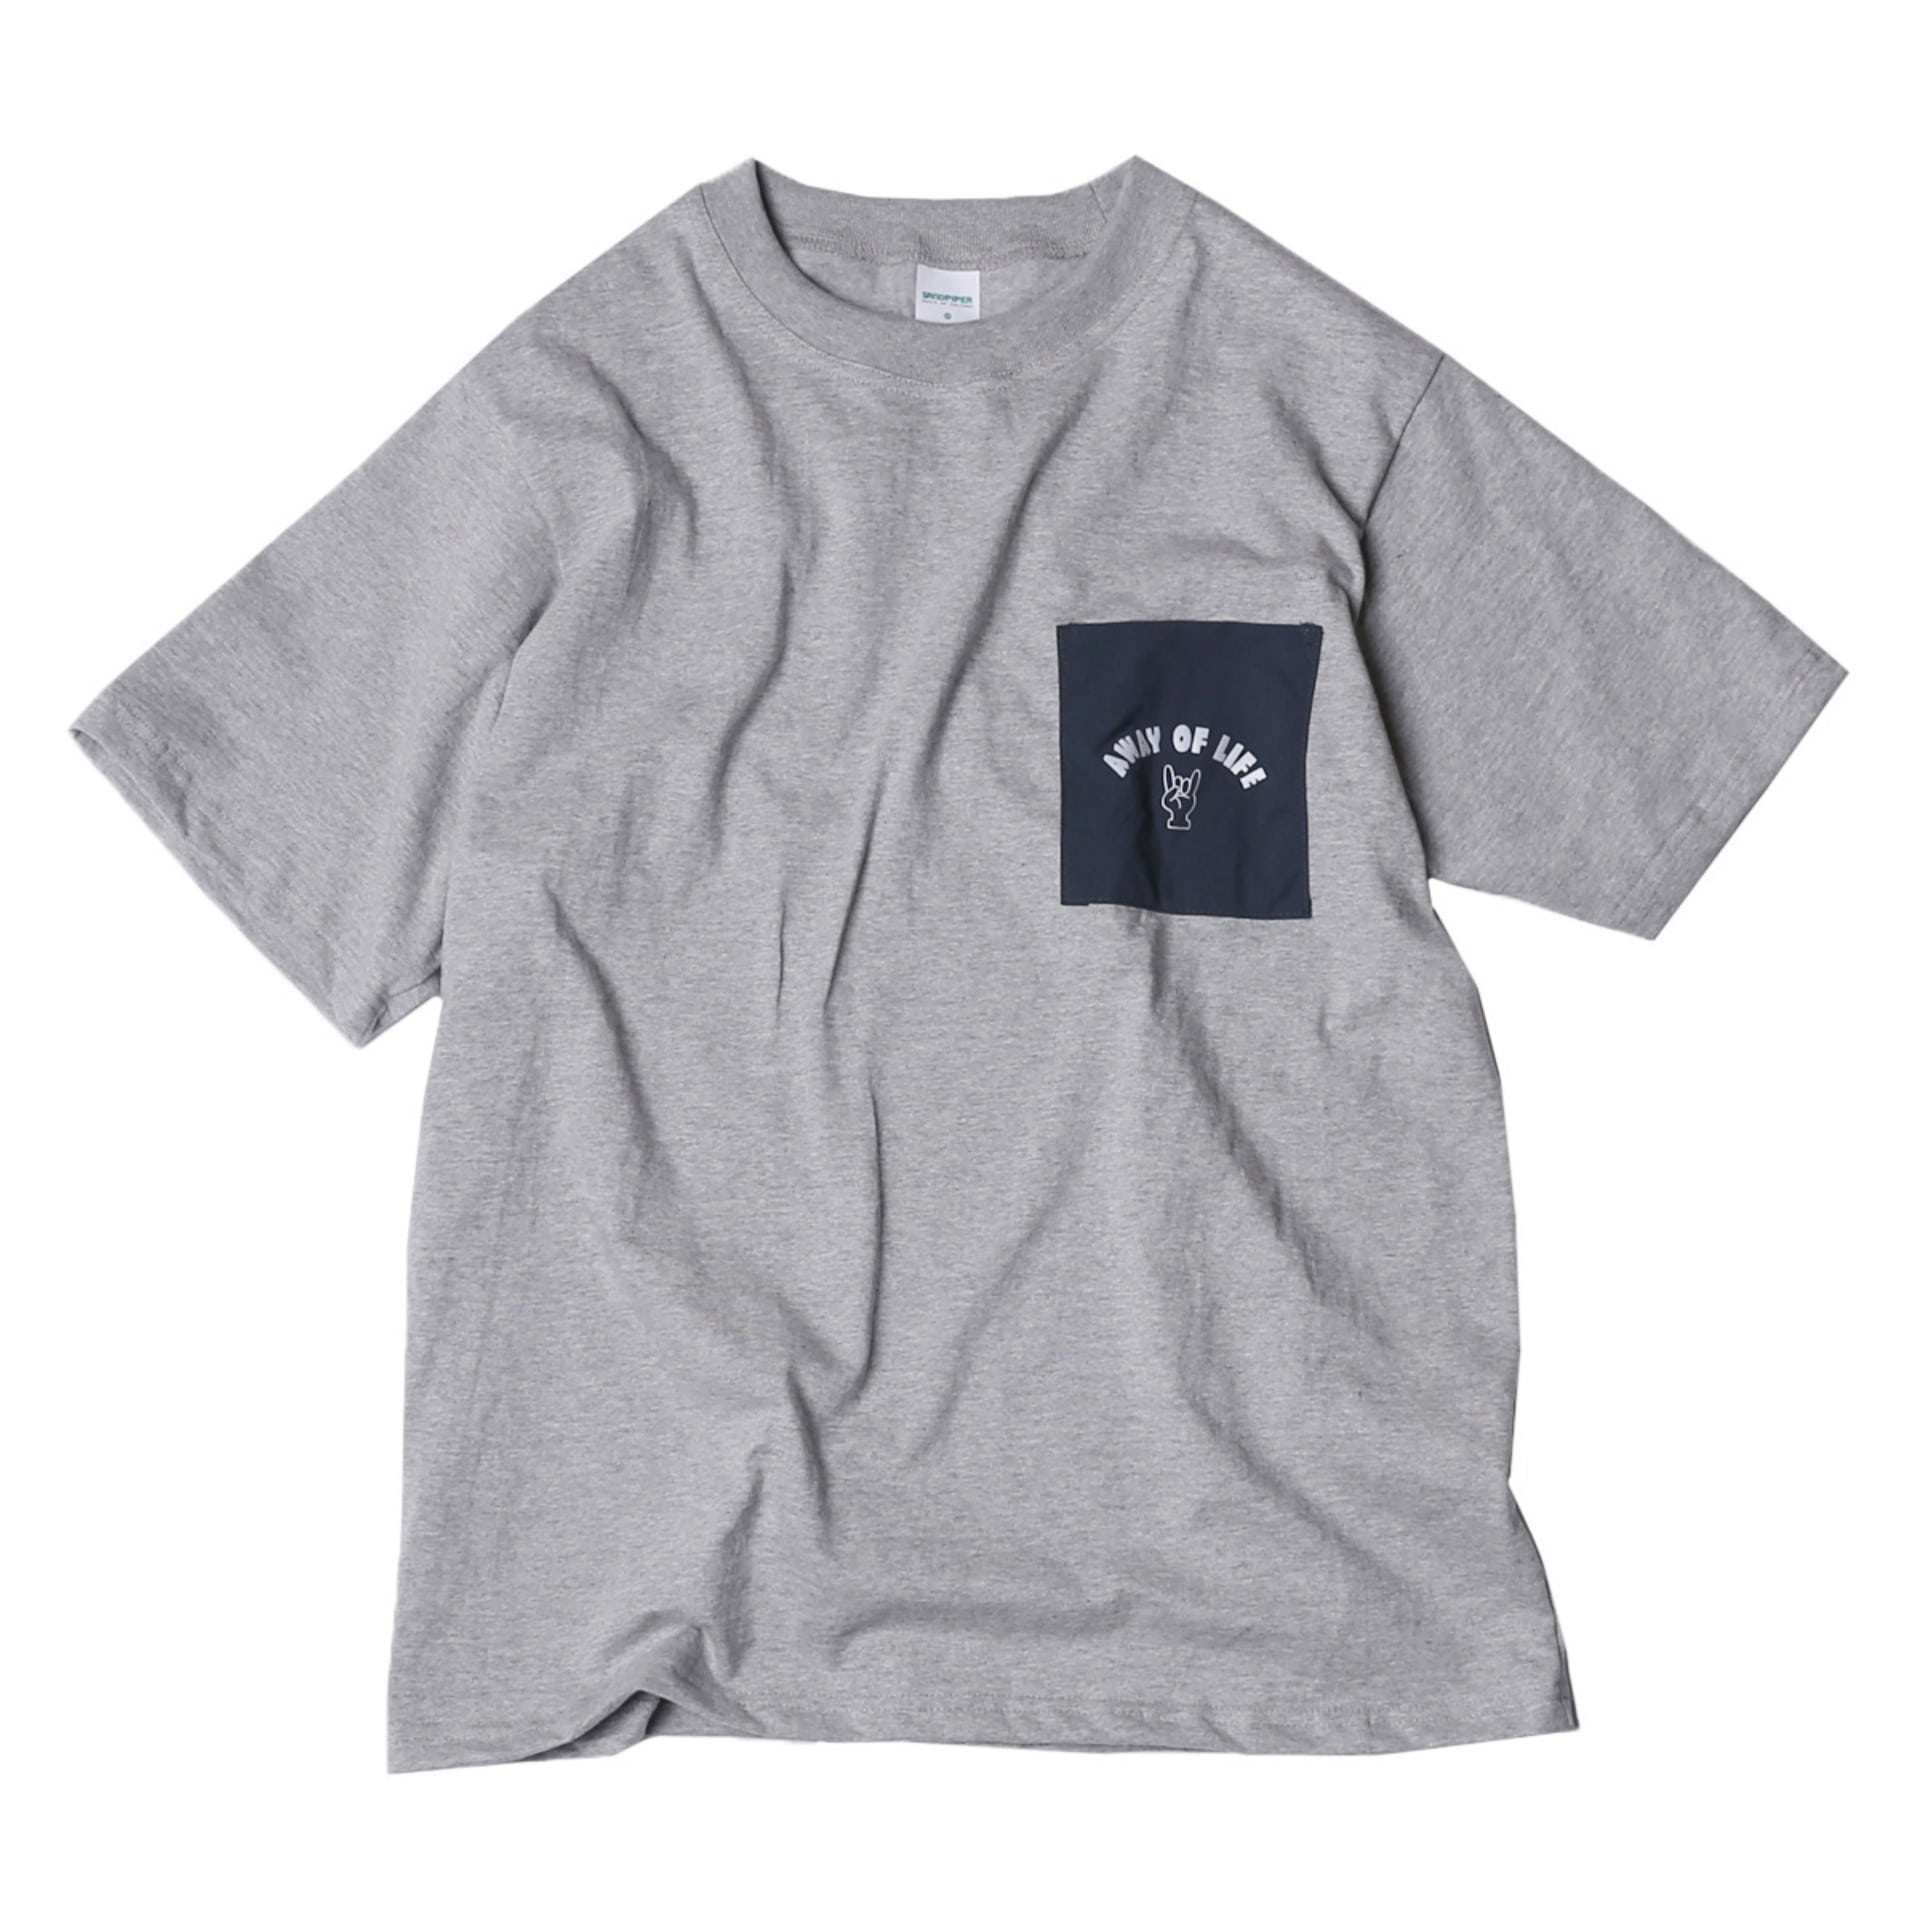 AWAY OF LIFE POCKET T SHIRTS(MELANGE)